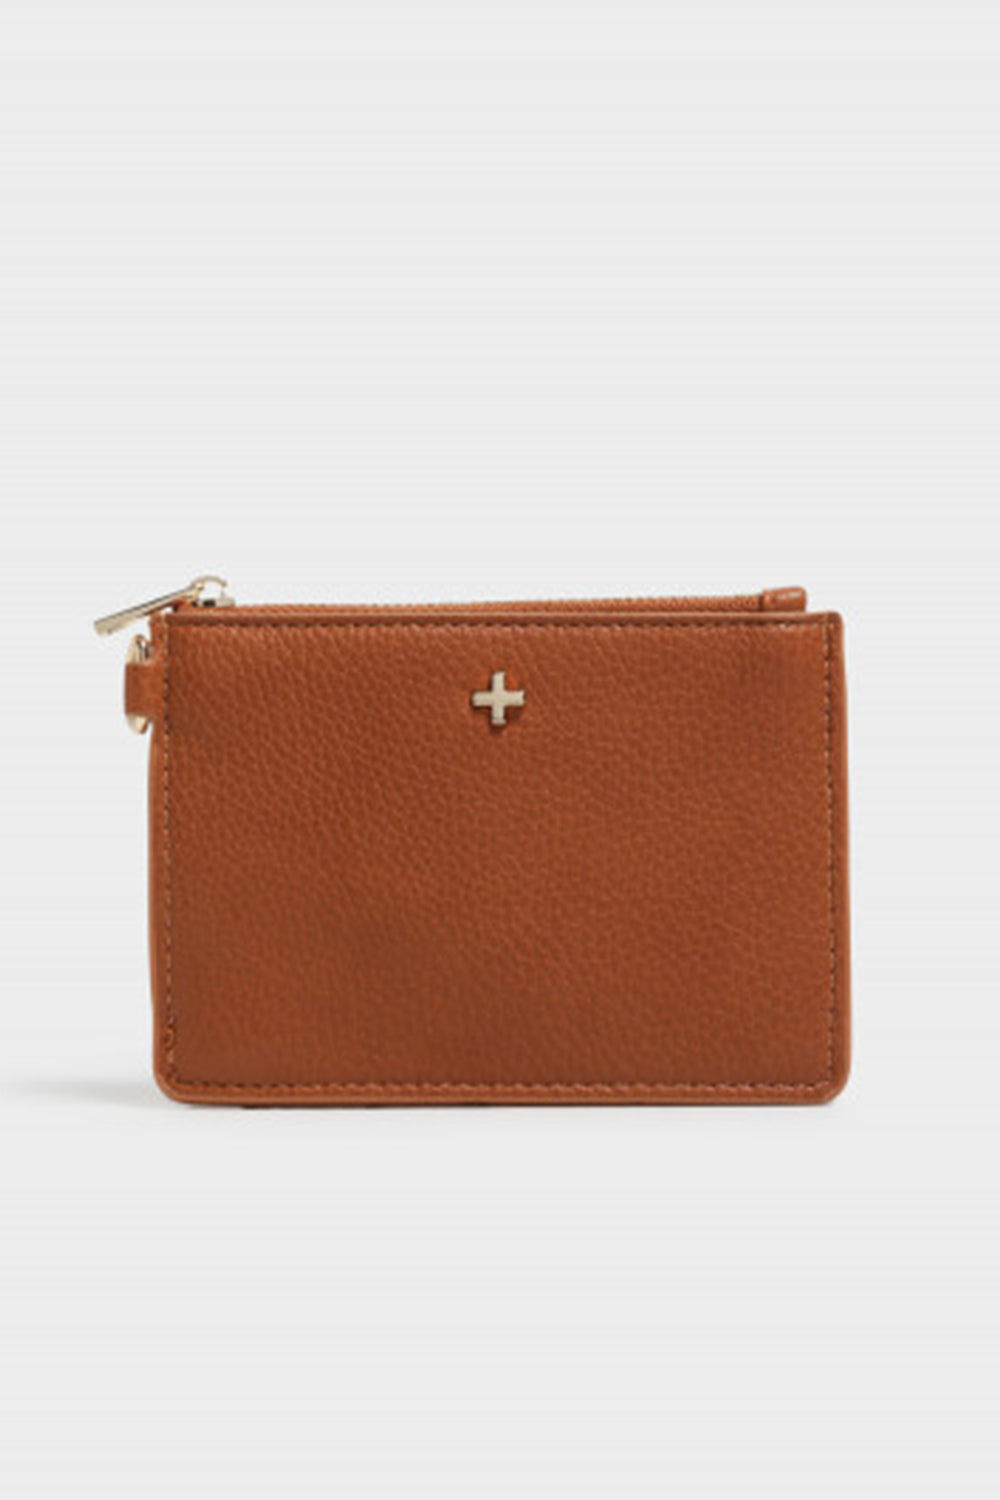 Peta & Jain / Kenzie Travel Purse / Tan